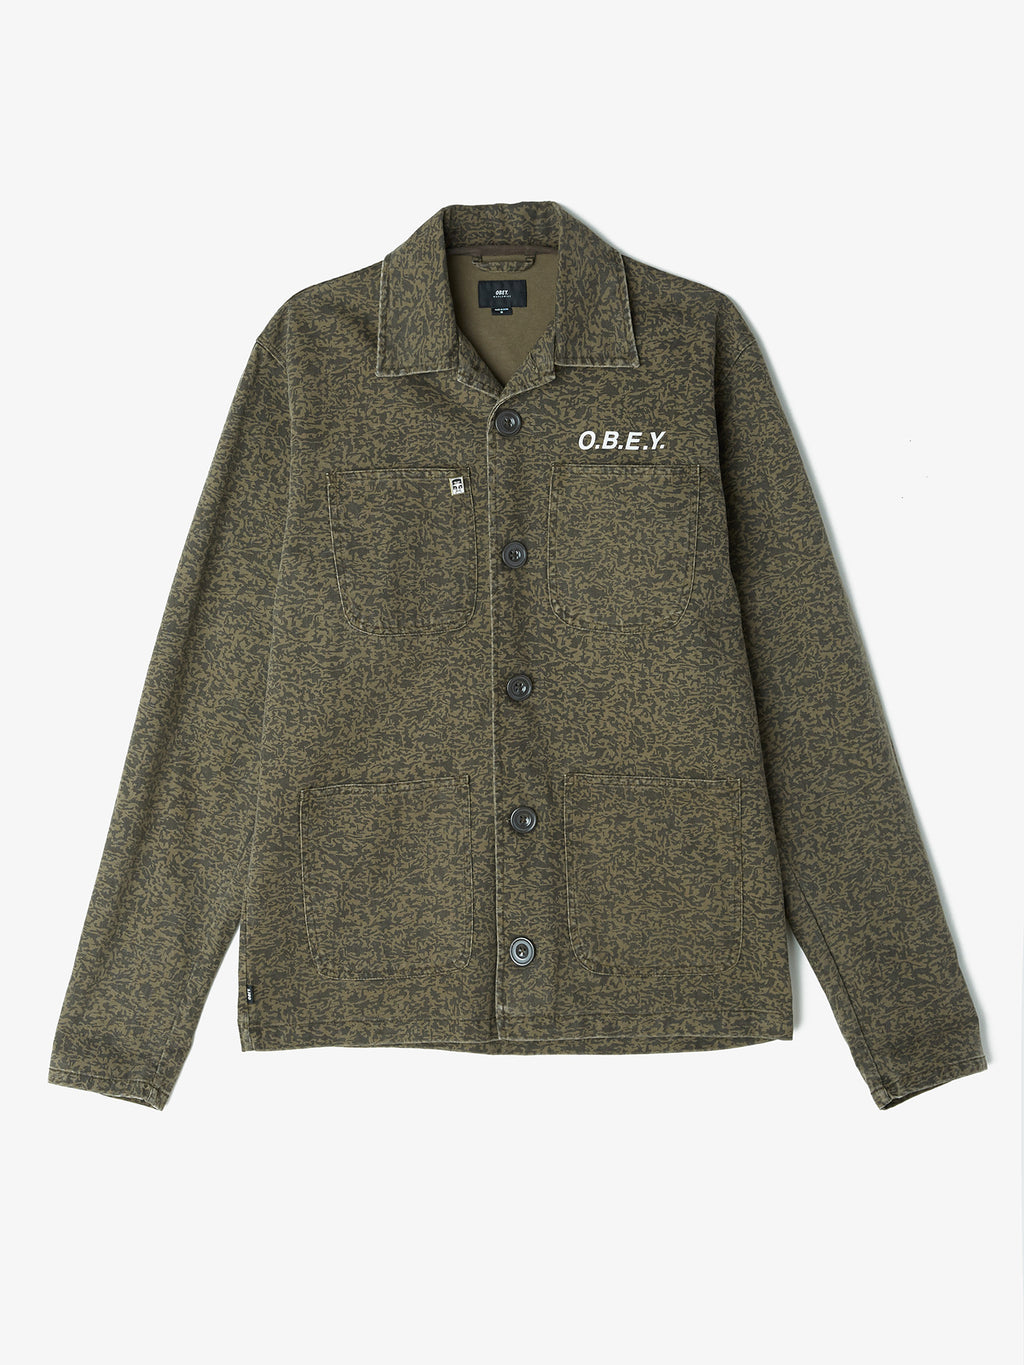 Obey Wasteline Jacket Light Jackets Ascent Wear - 1